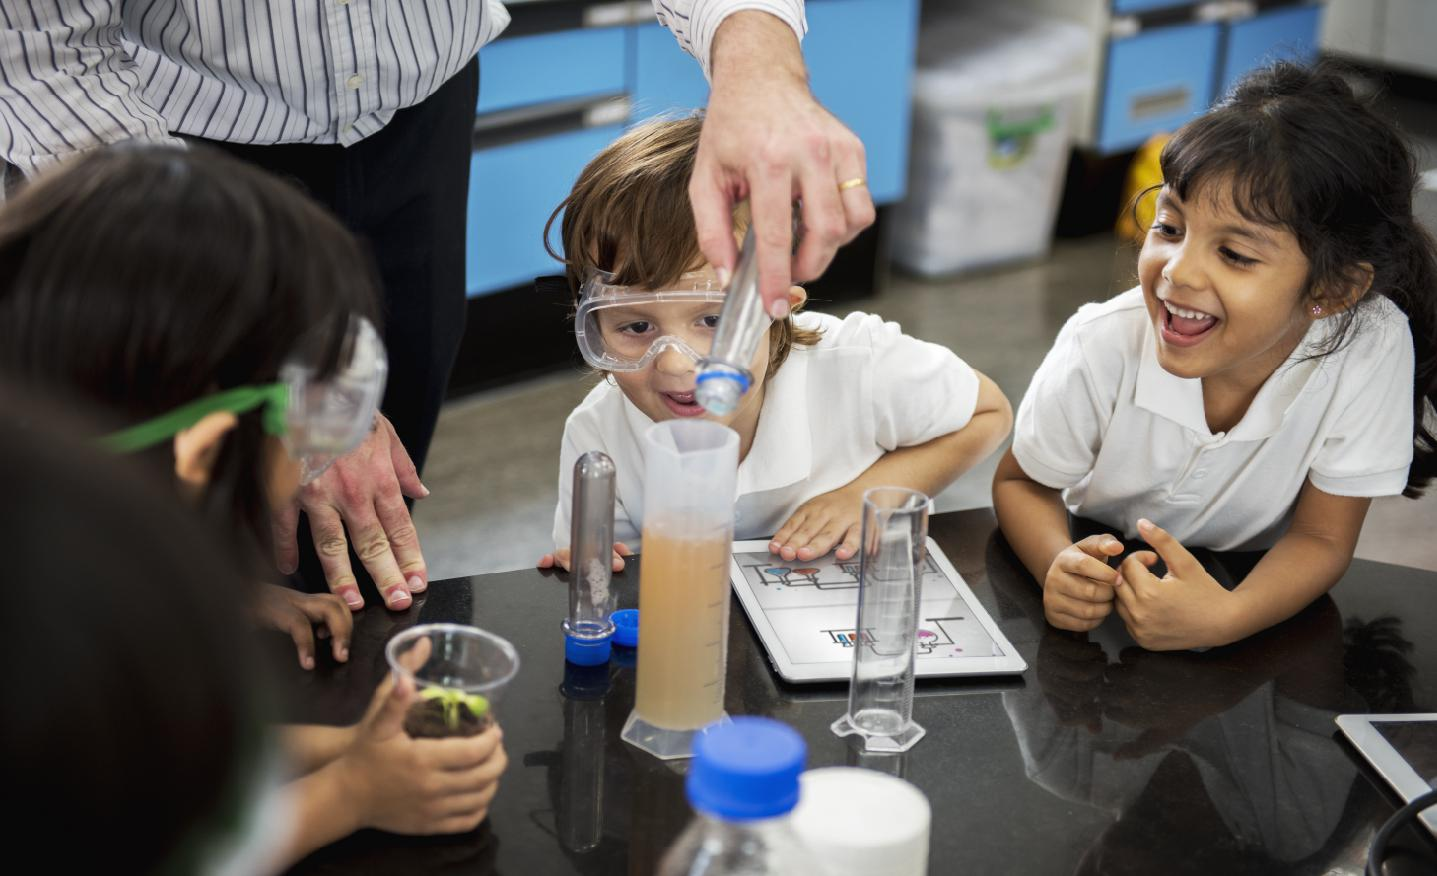 What Is Scientific Temper? Here's Why It Is Important For Children To Have A Scientific Bent of Mind